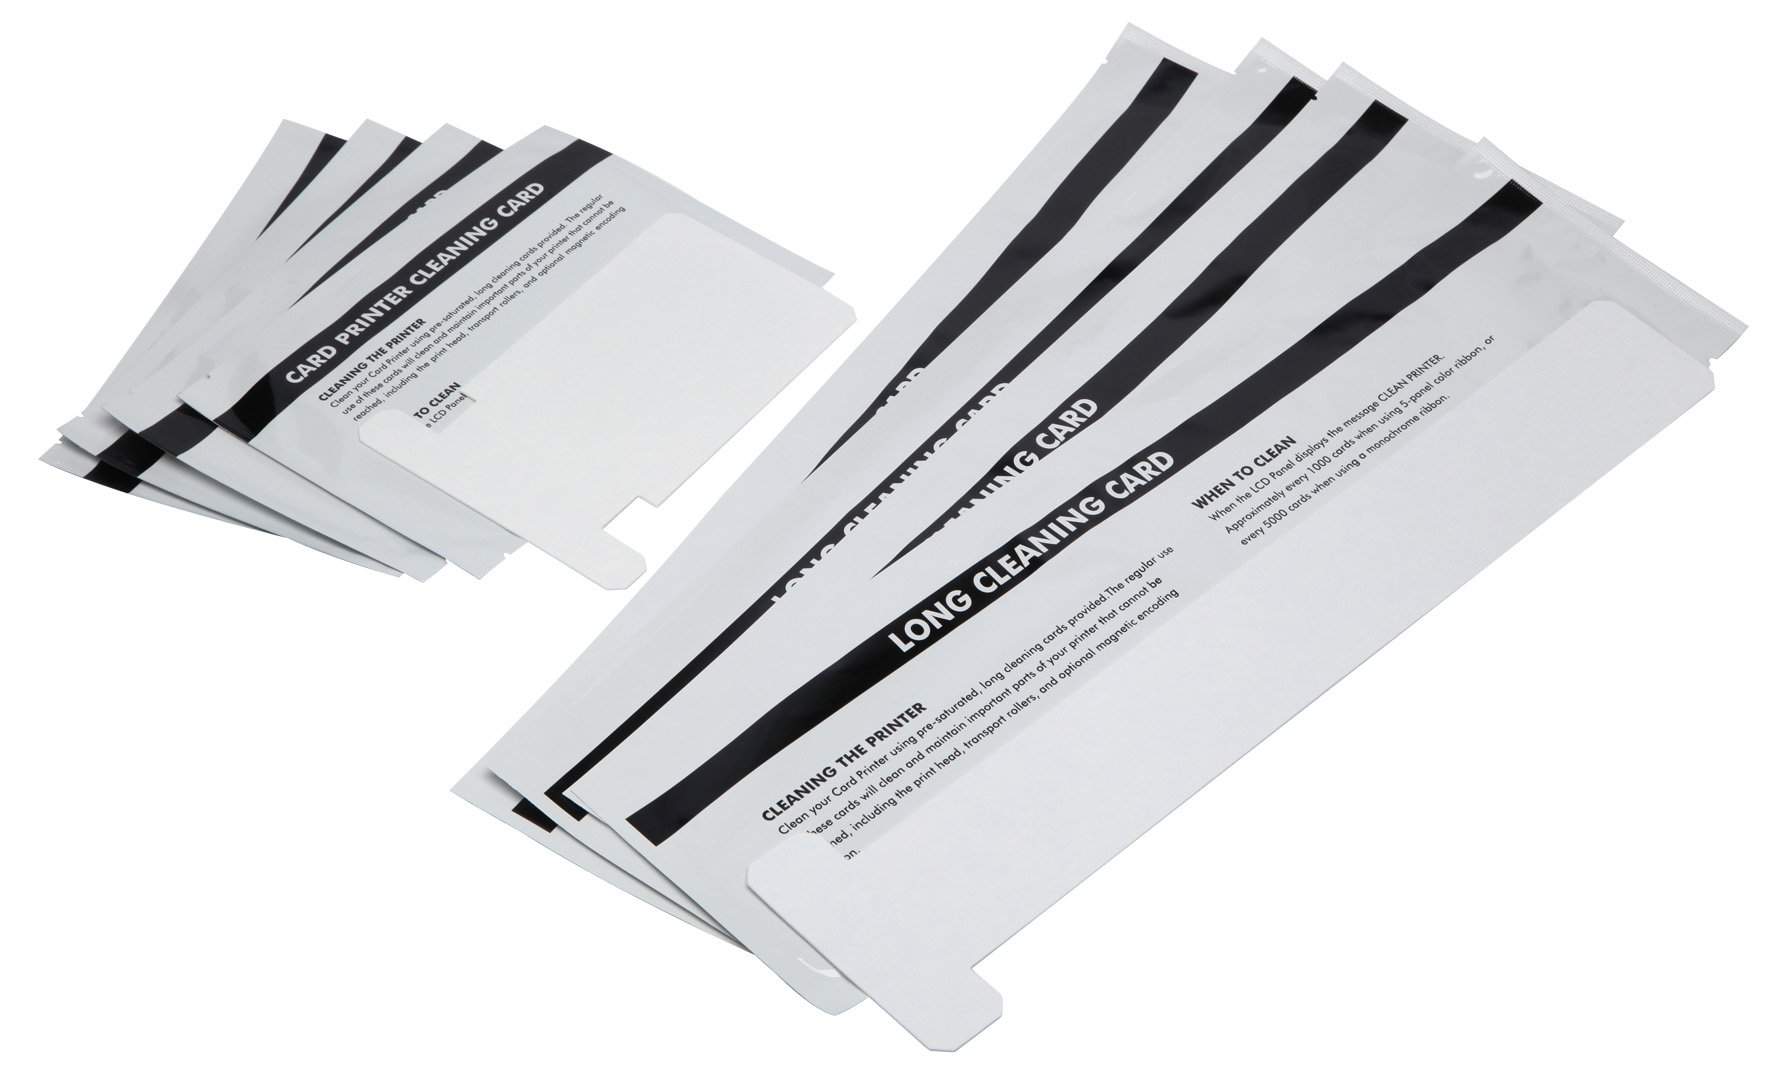 Cleanmo Repair Cleaning Kits for ZXP Series 1 and 3 ID Card Printer, Pack of 4 Short T Cards and 4 Long T Cards by Cleanmo